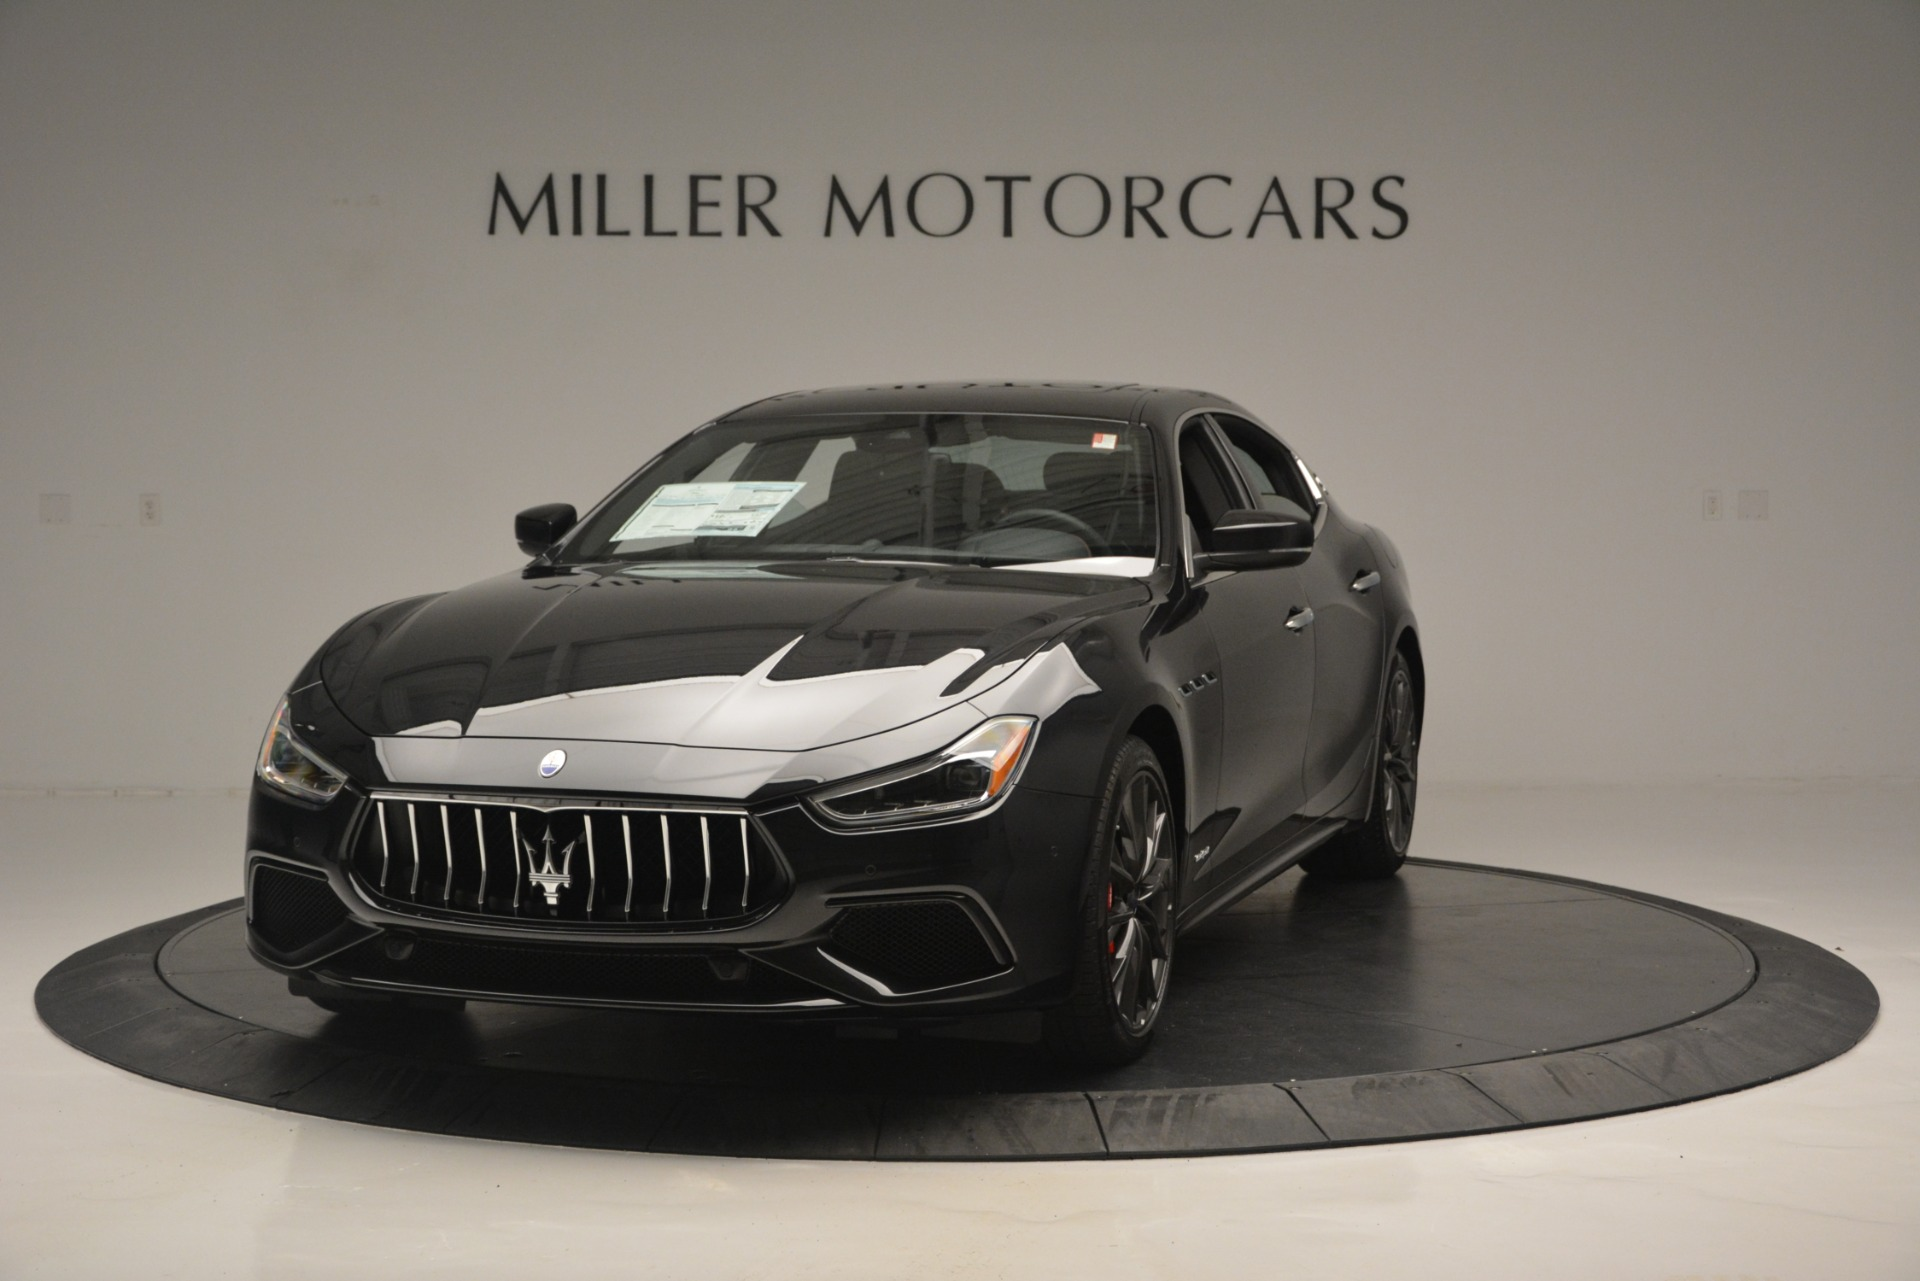 Used 2019 Maserati Ghibli S Q4 GranSport for sale Sold at Aston Martin of Greenwich in Greenwich CT 06830 1